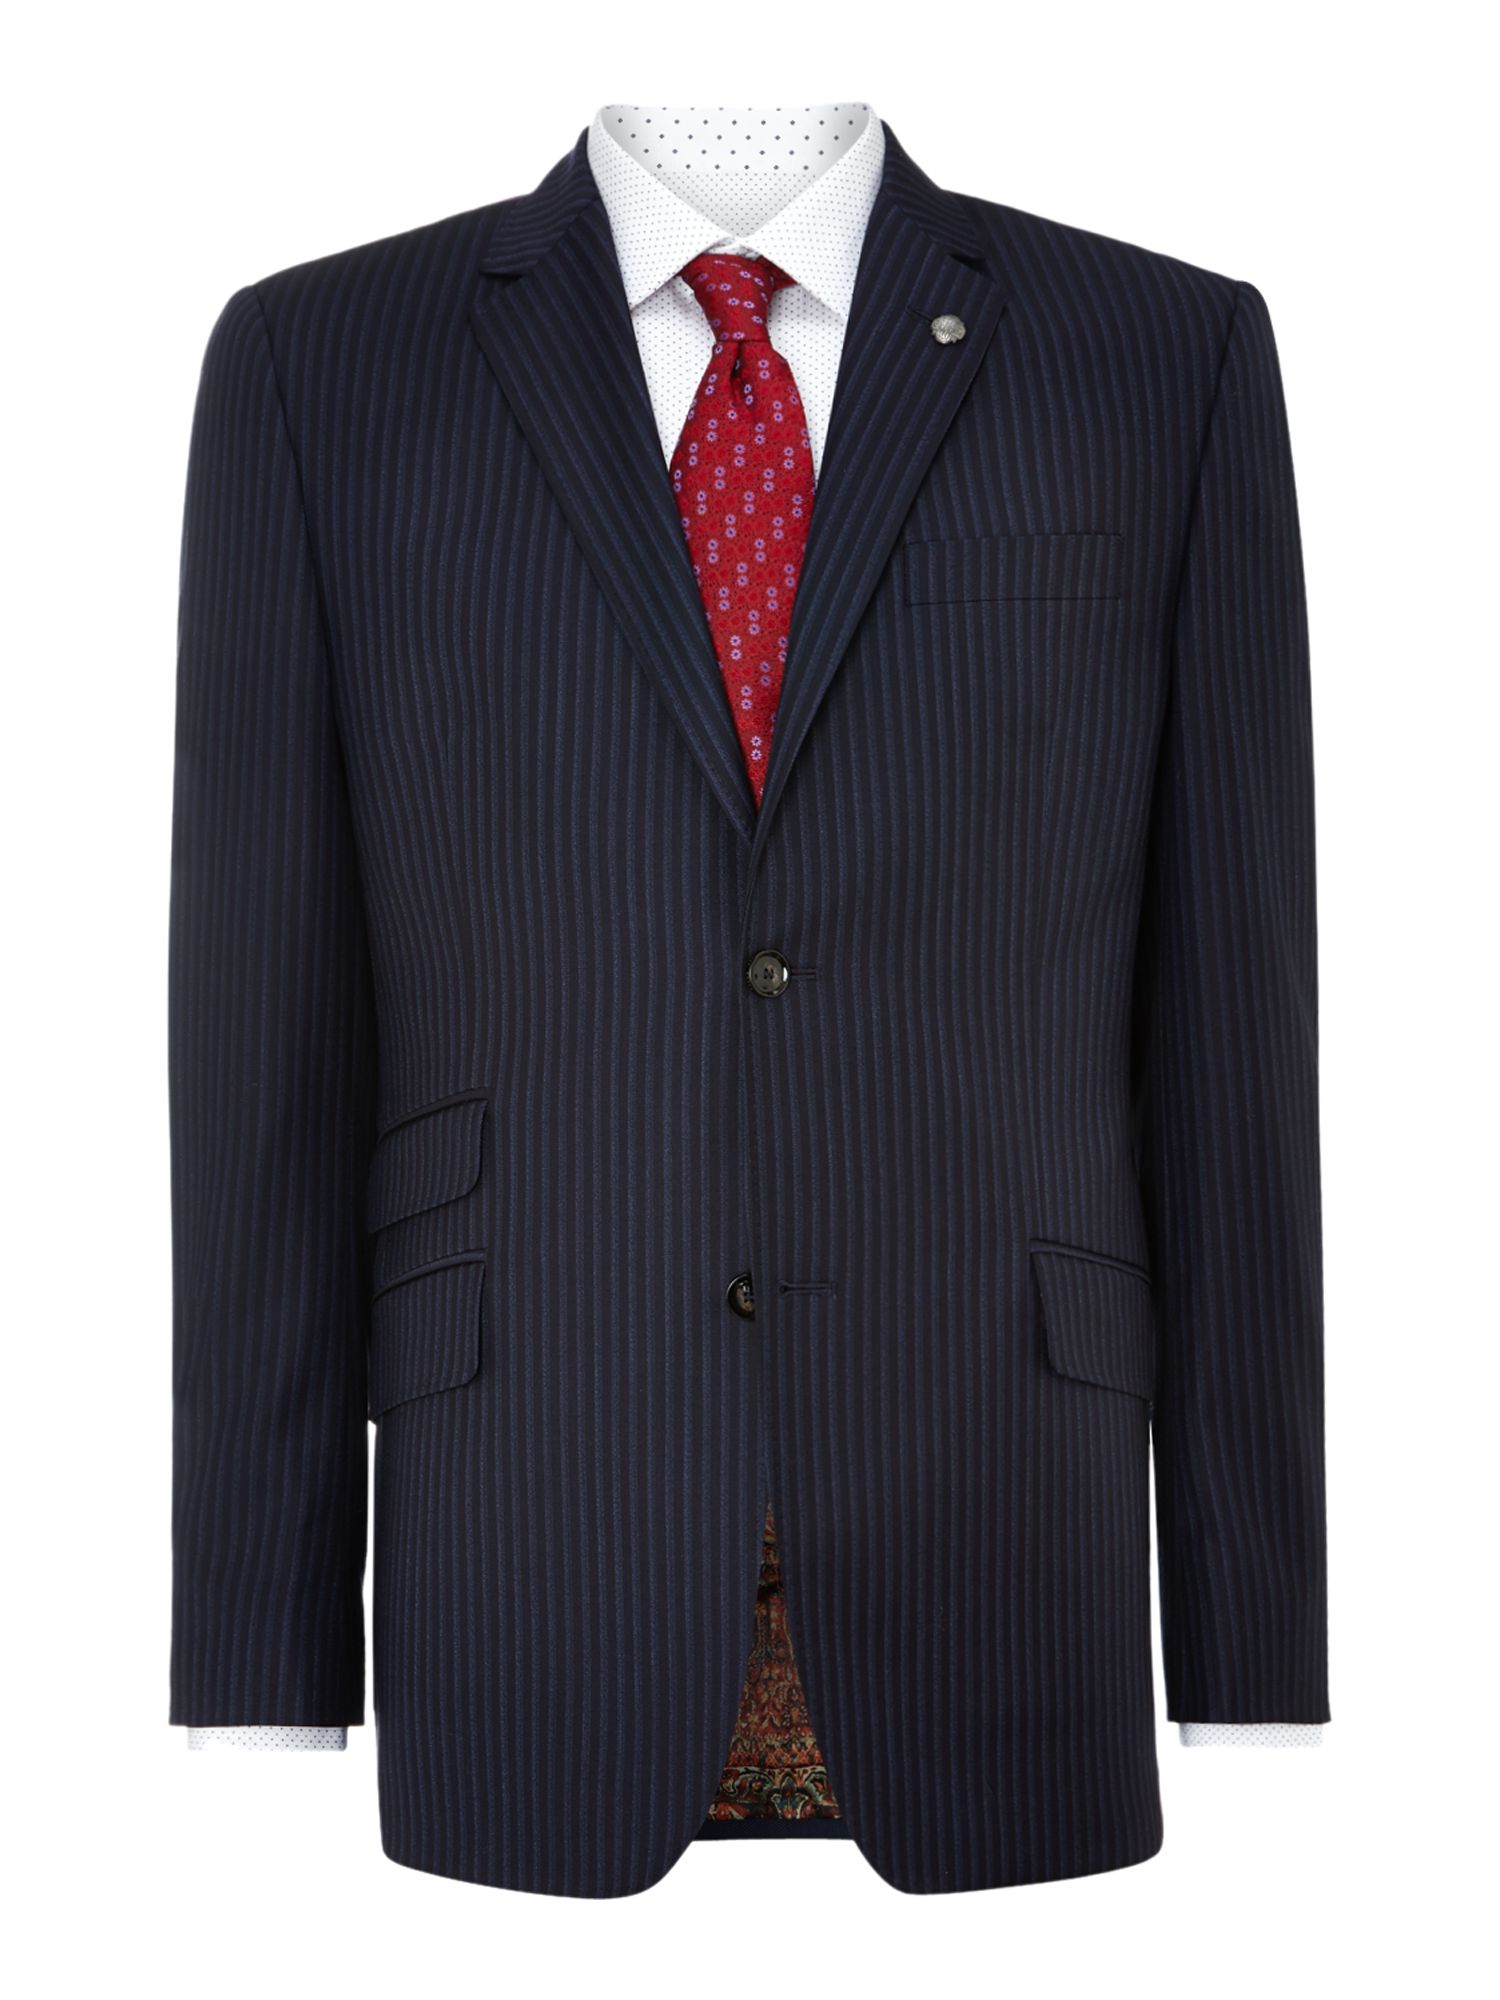 Endex regular fit shadowtripe suit